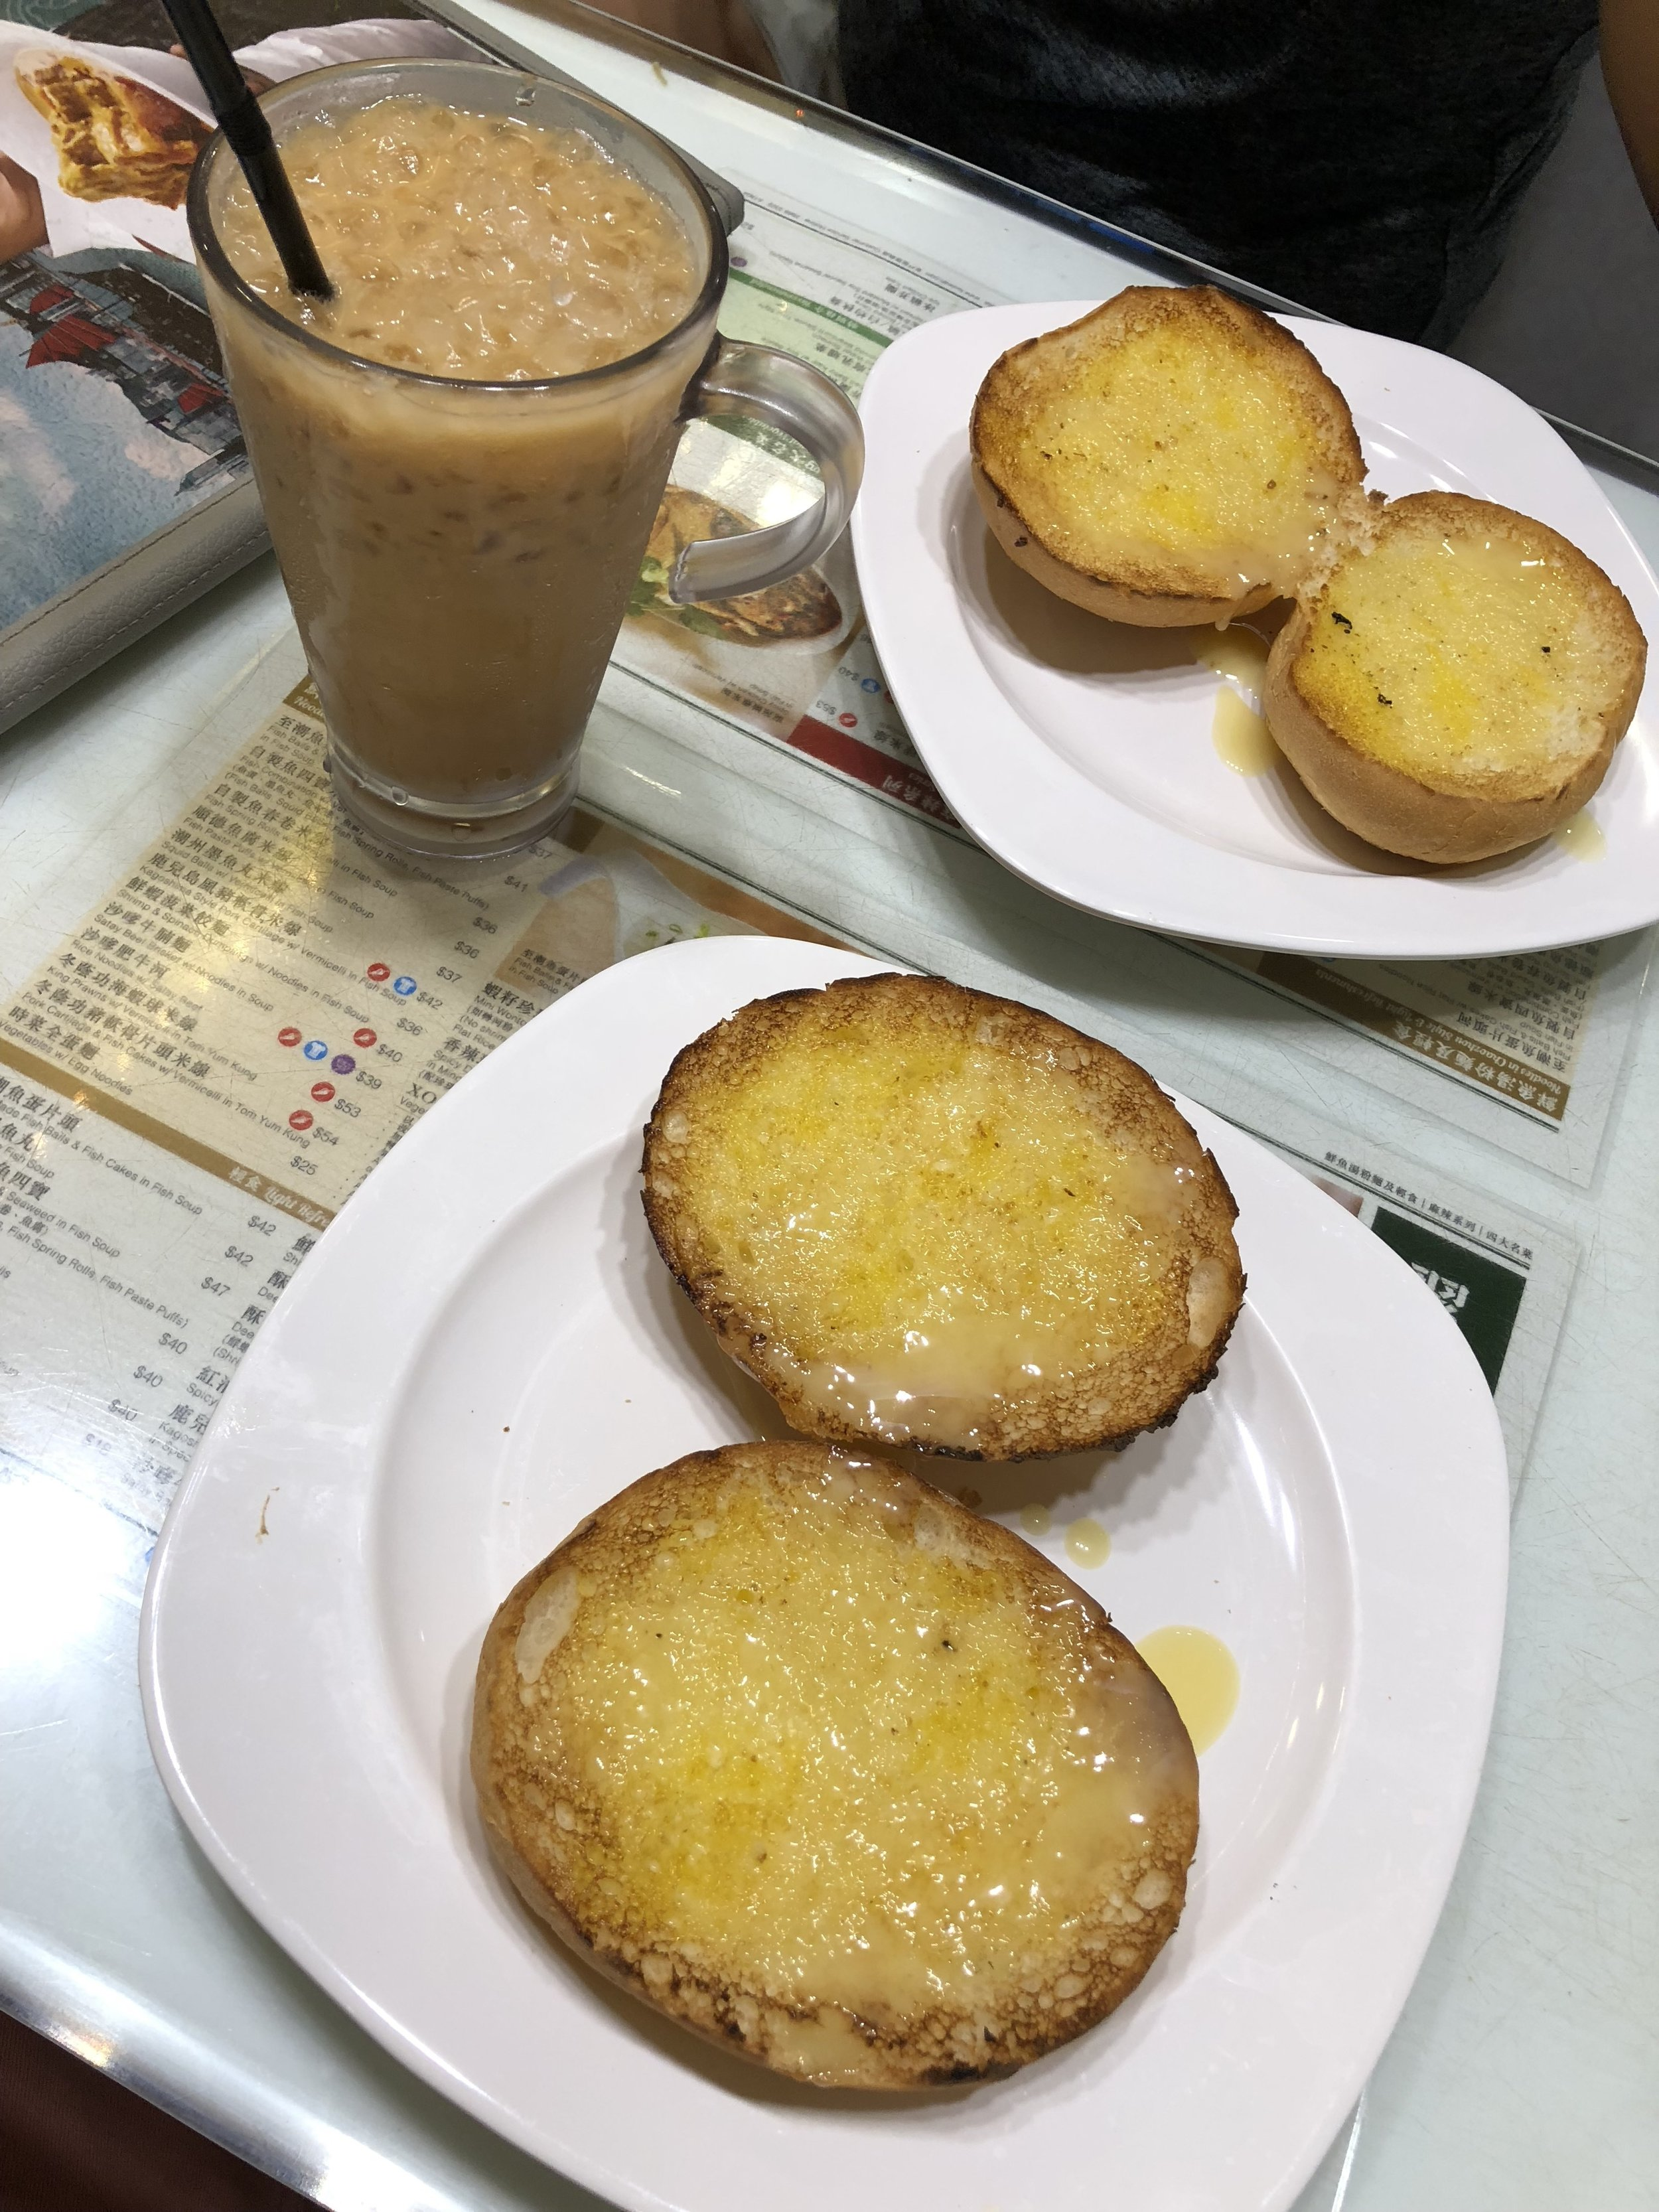 Hong Kong Toast with butter and condensed milk.